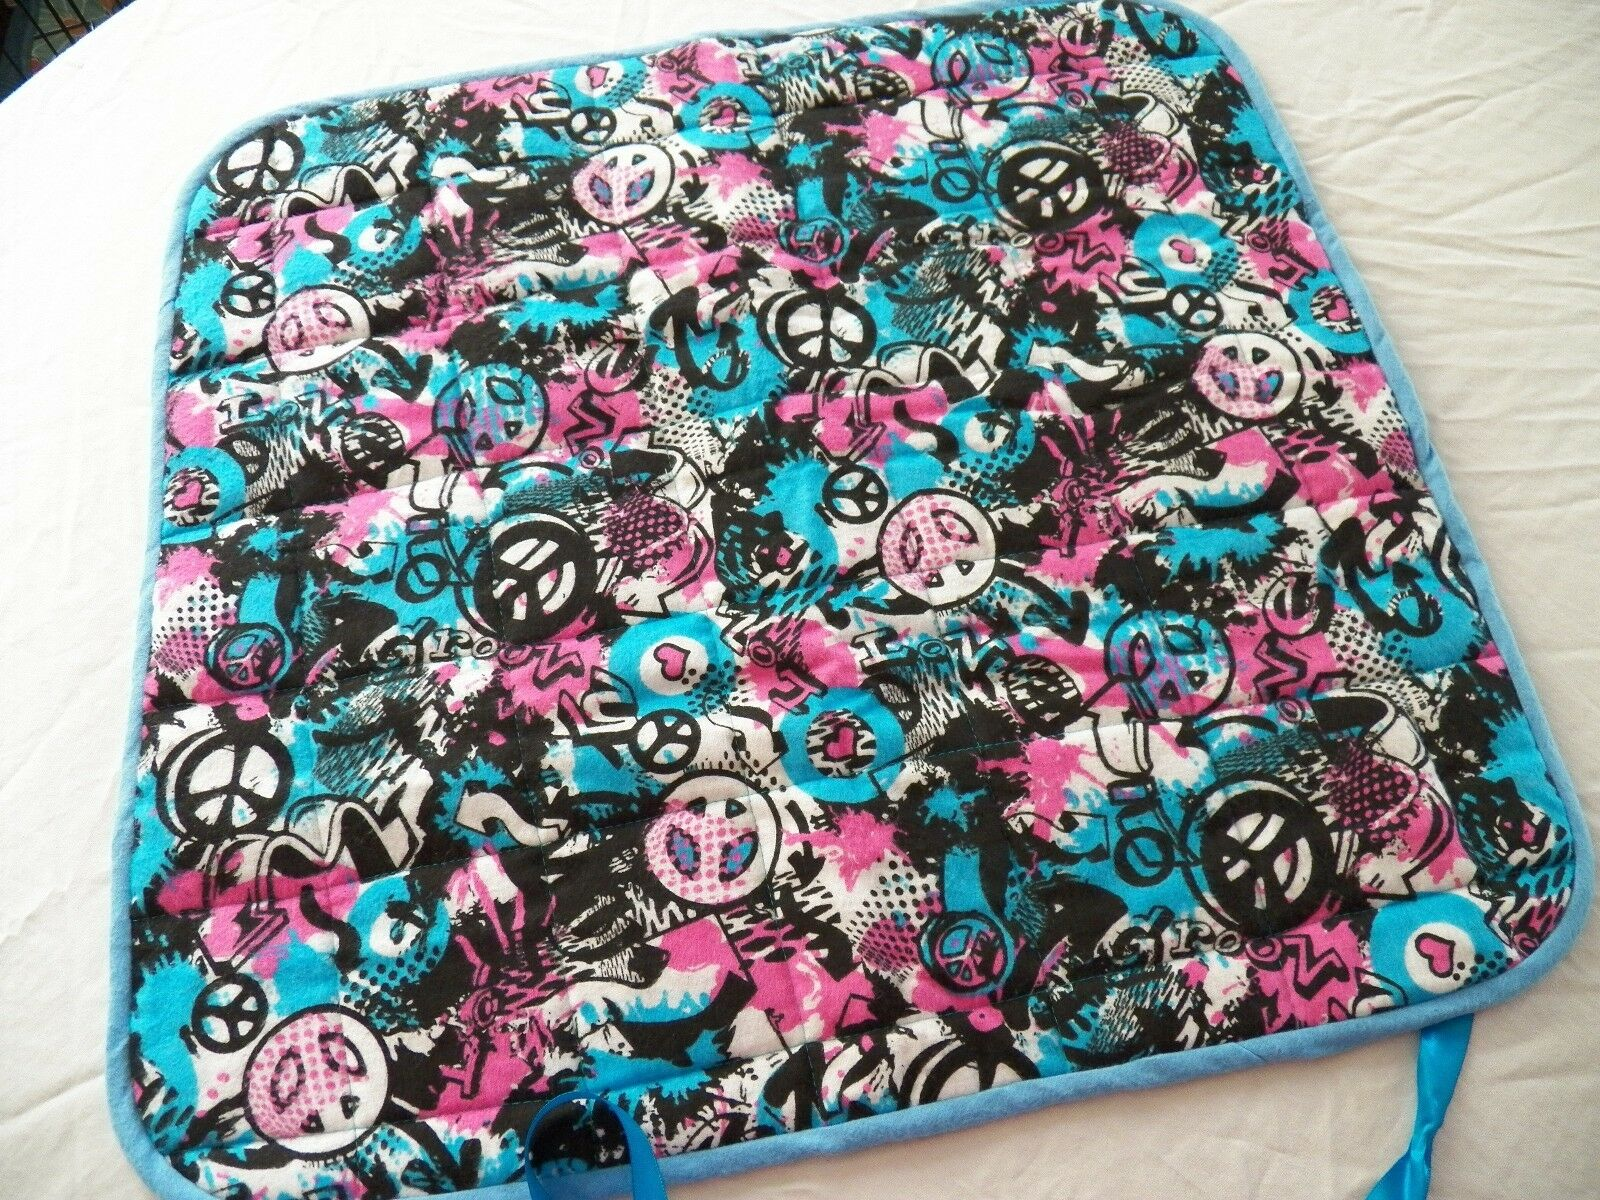 BABY CHANGING PAD Portable Diaper Travel Mat Cotton Washable Padded Handmade NEW 6